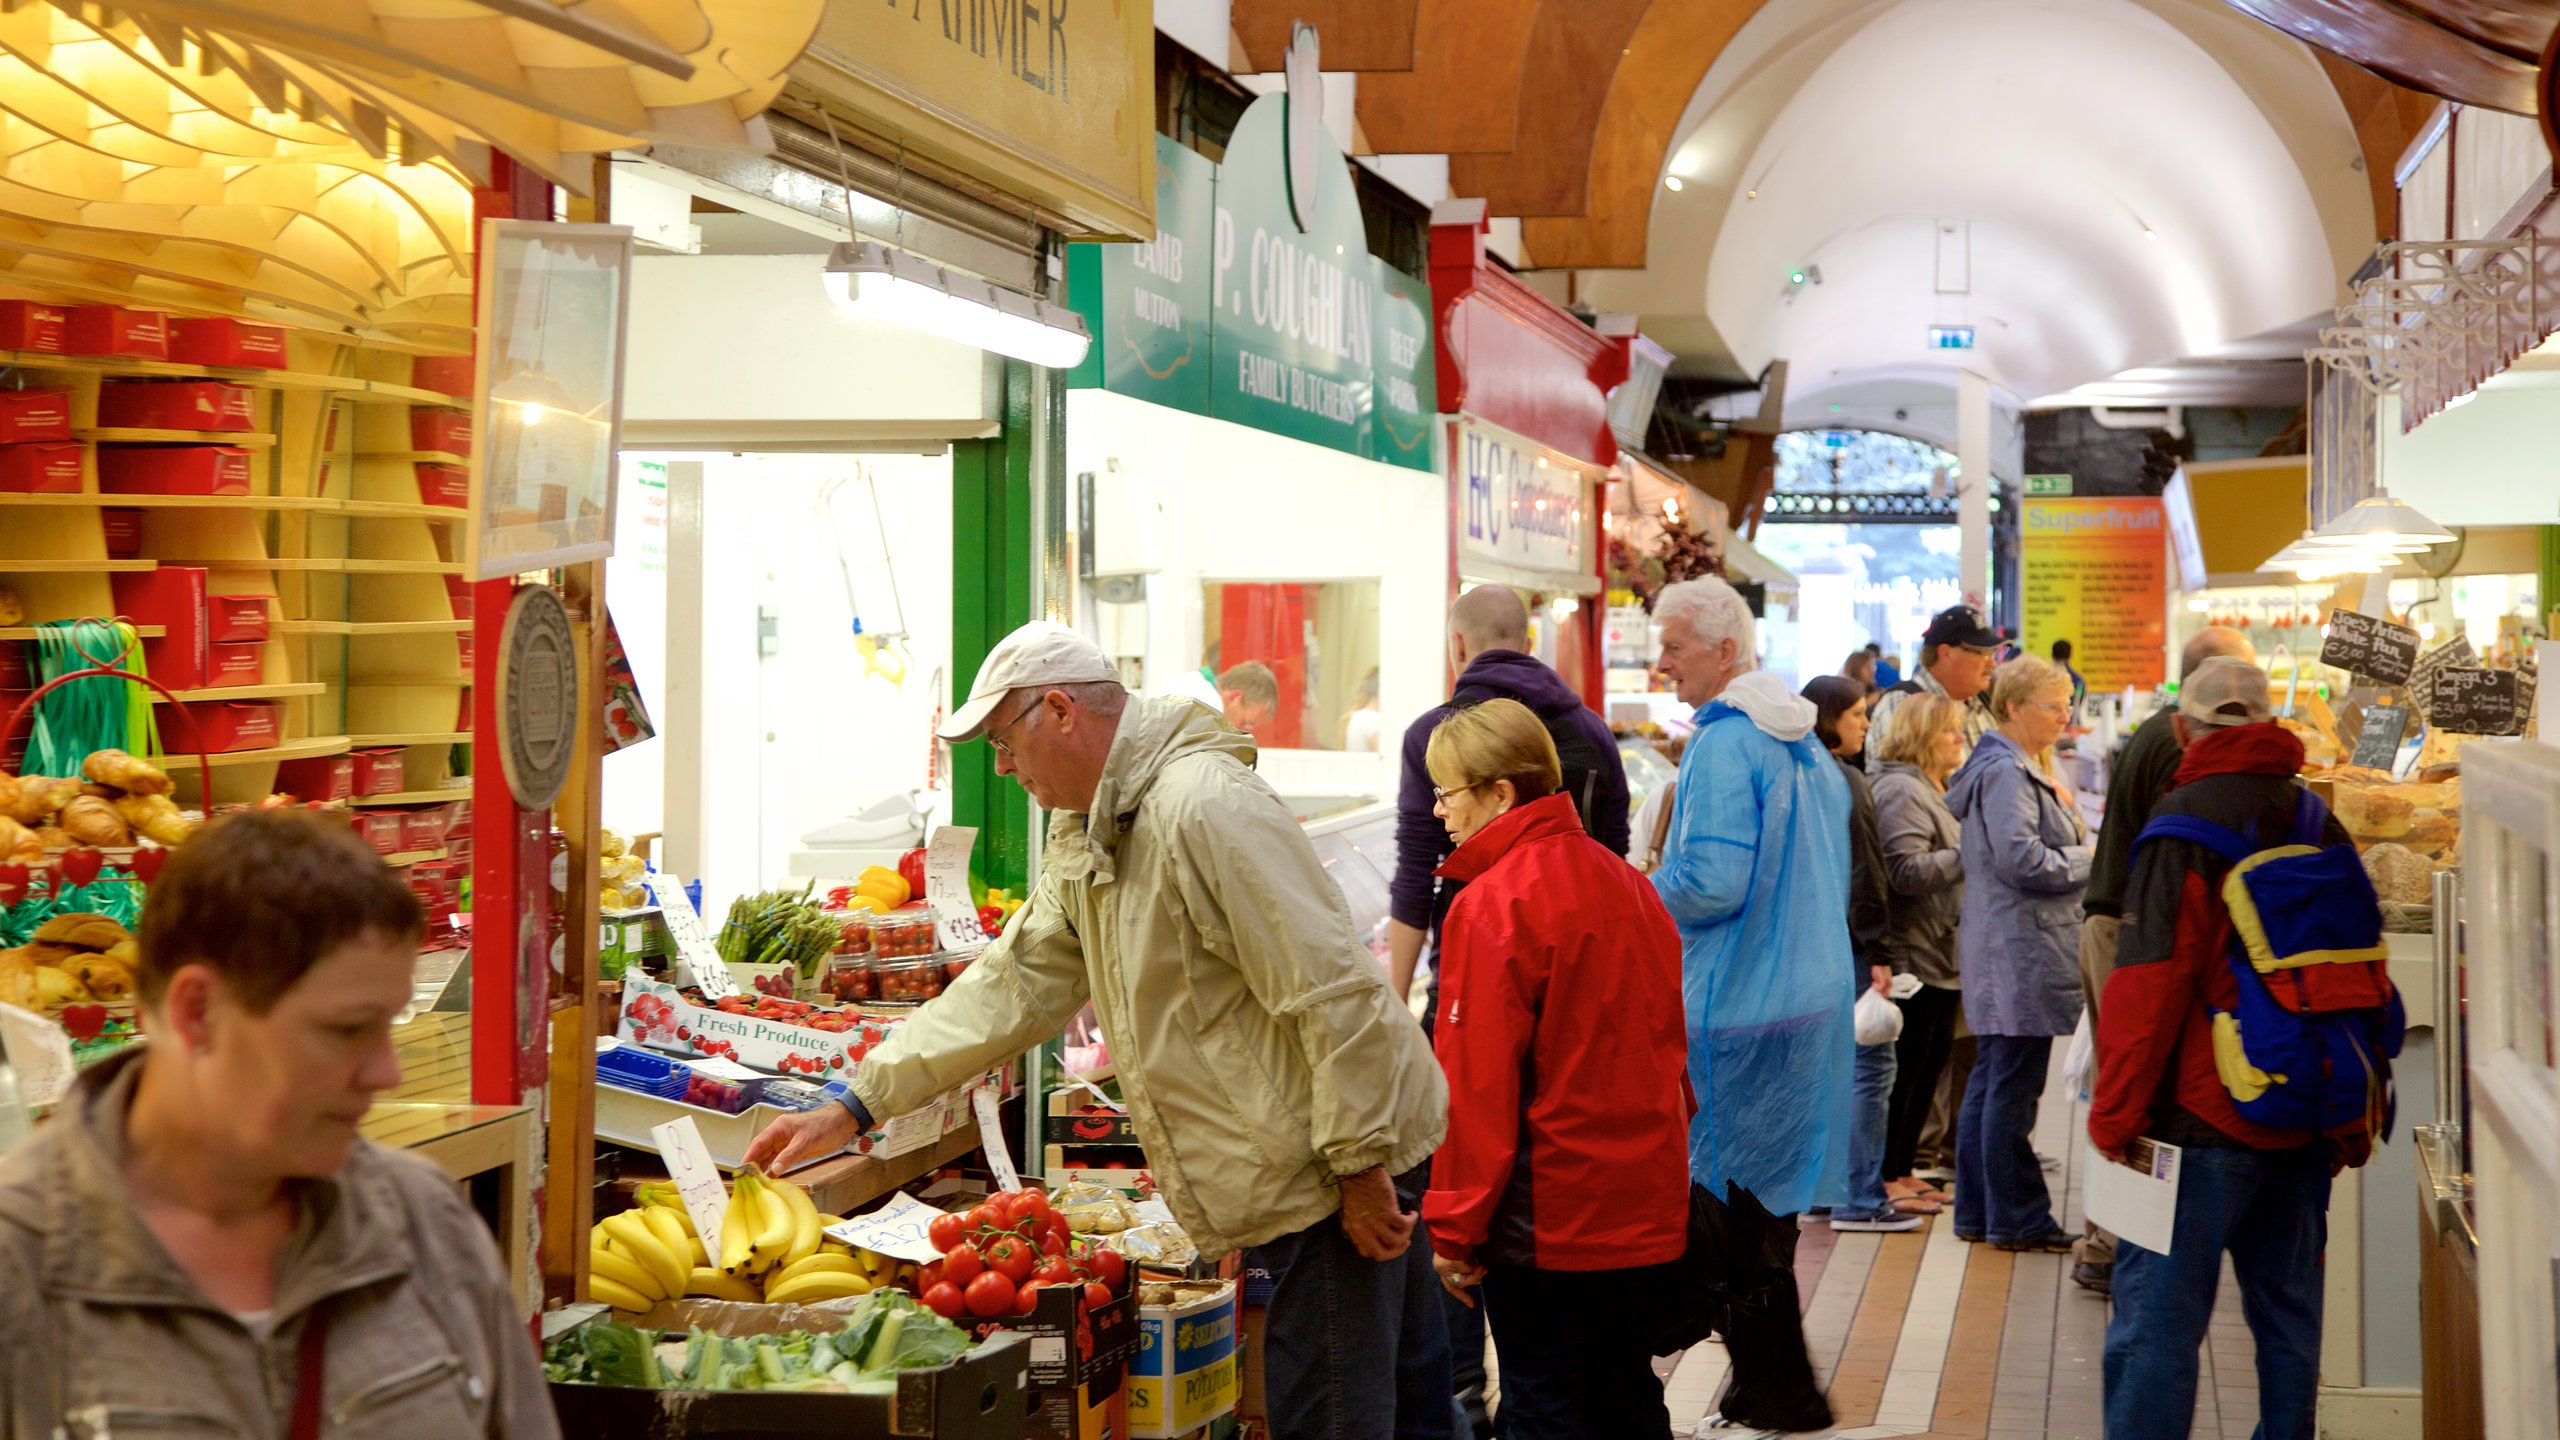 Shop for fresh produce from around the world and sample traditional Cork dishes at this historic food market inside a grand Victorian building.